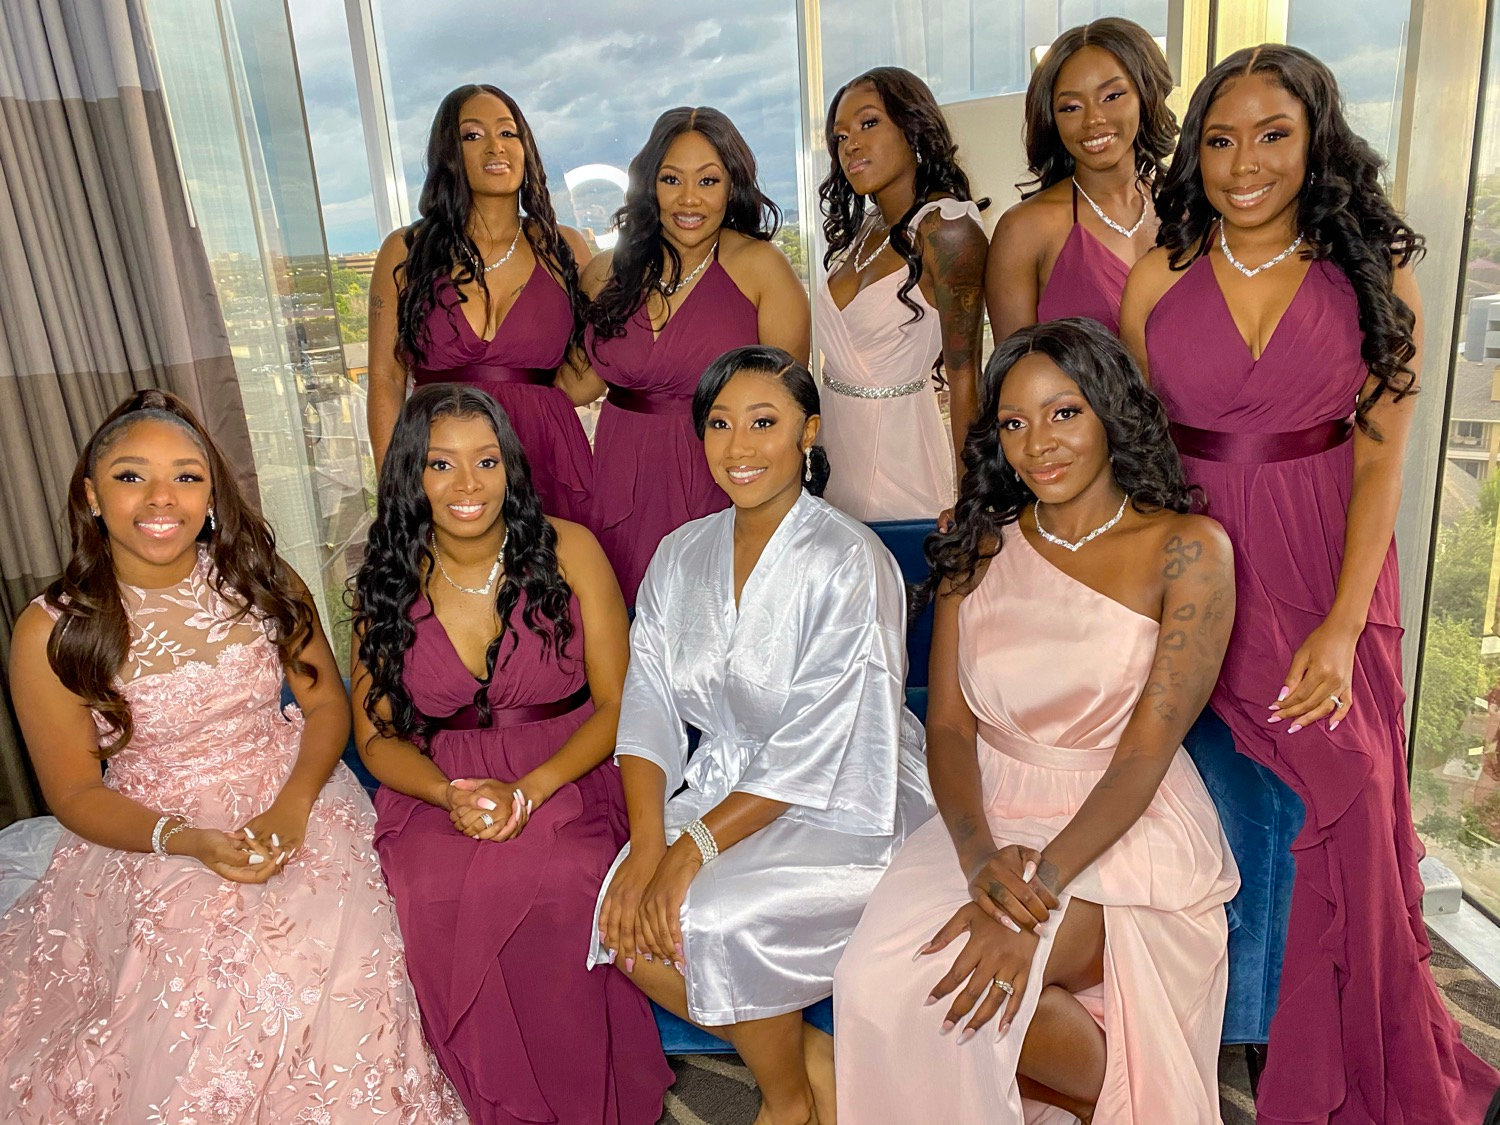 BRIDAL PARTY (does not include Bride)